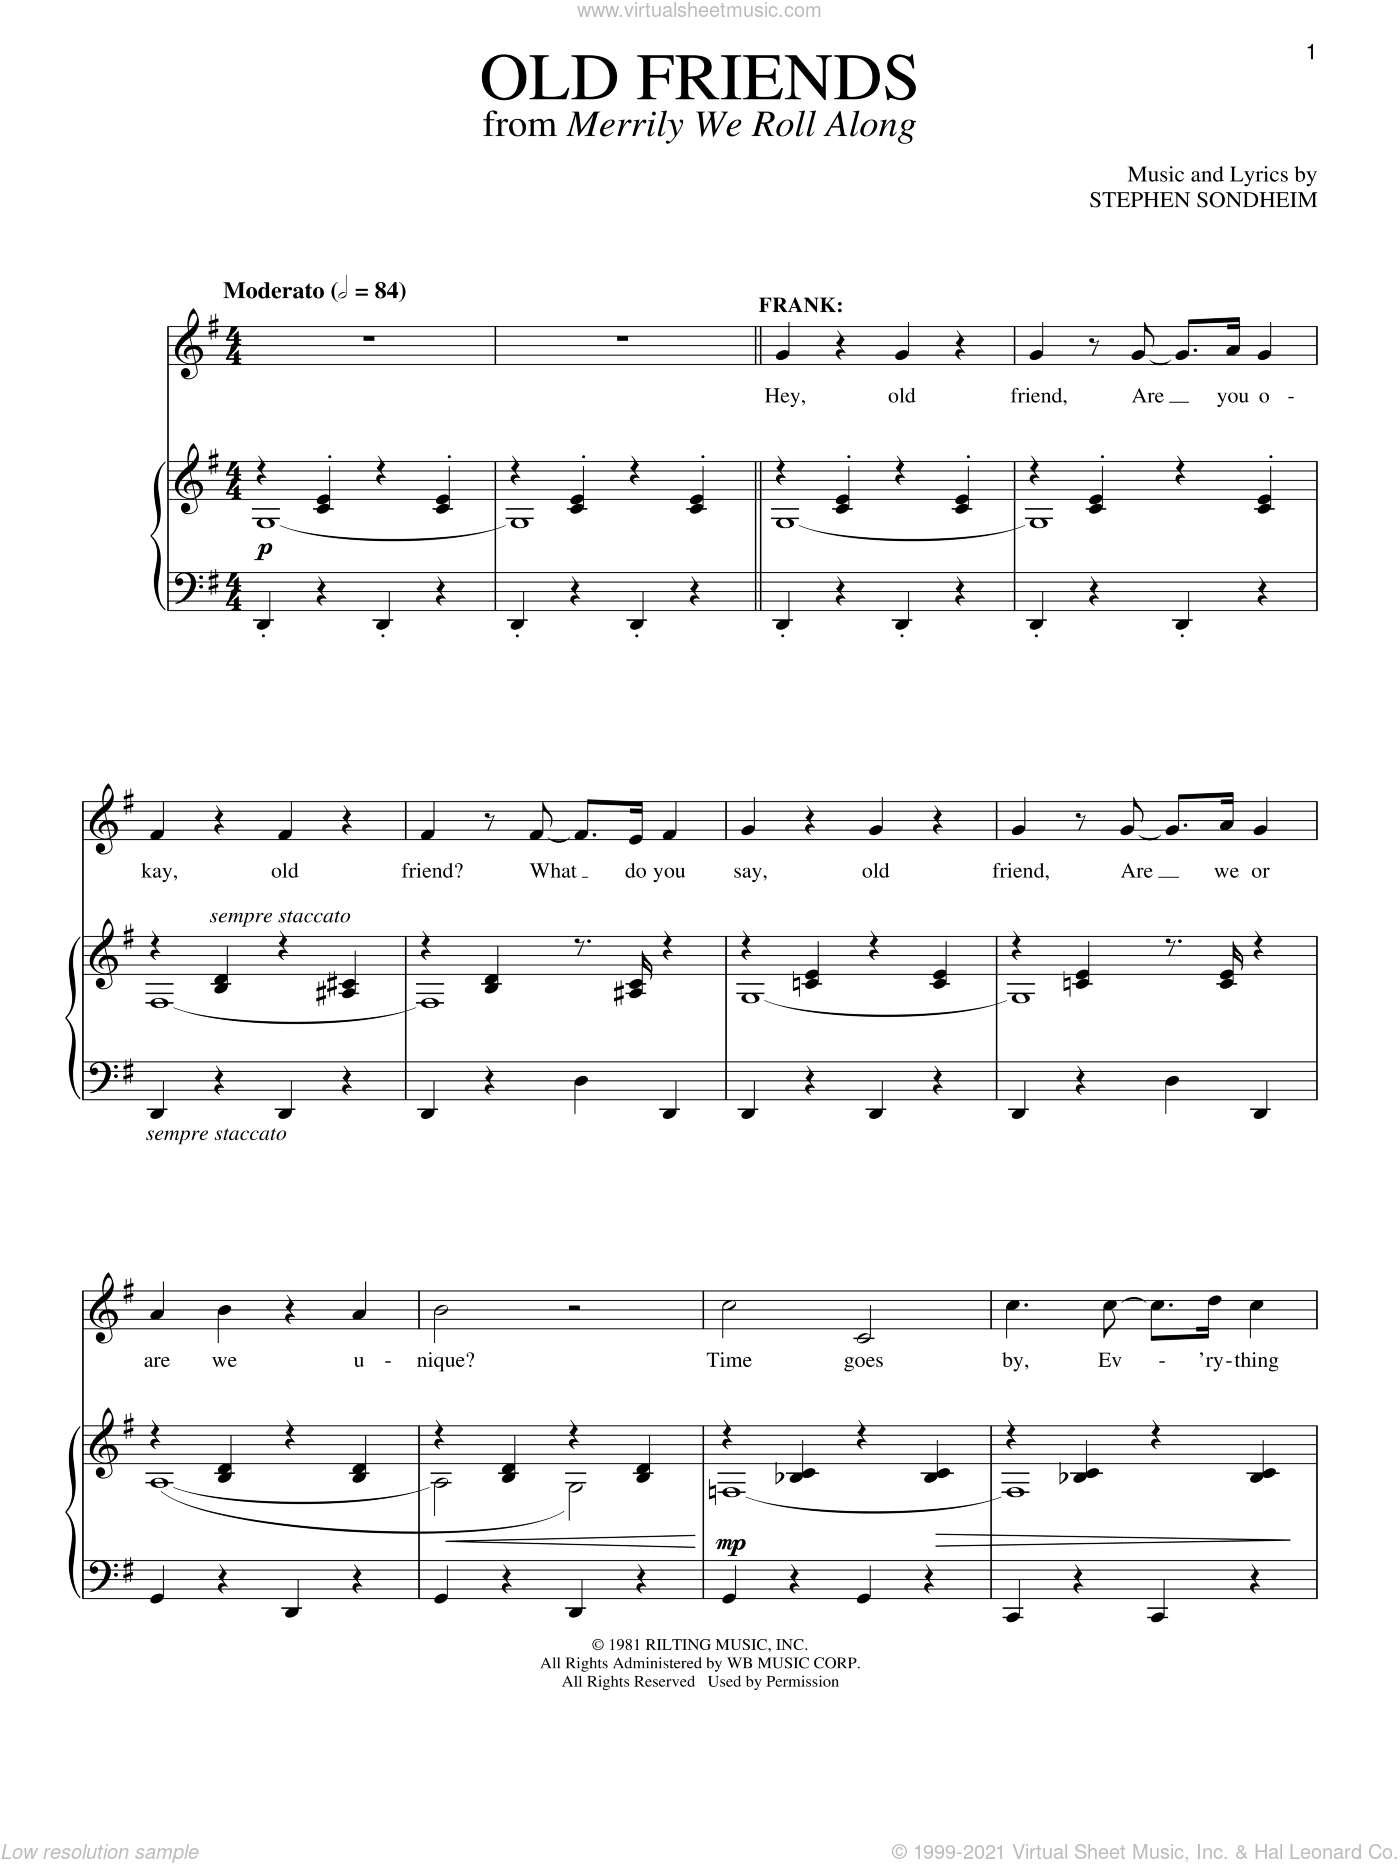 Old Friends sheet music for voice and piano by Stephen Sondheim, intermediate skill level